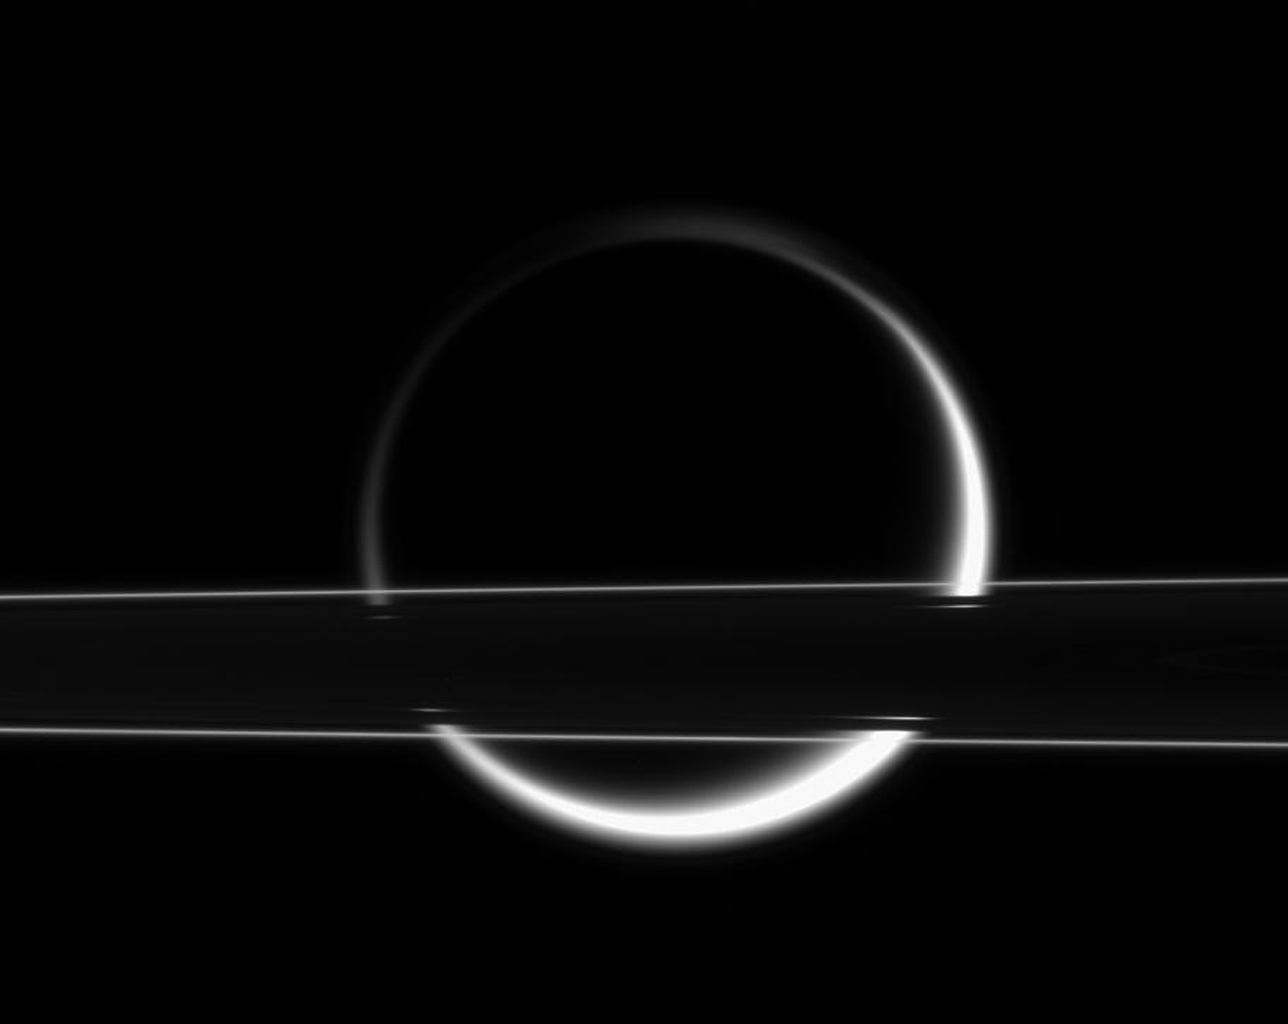 Titan's smoggy atmosphere glows brilliantly in scattered sunlight, creating a thin, gleaming crescent beyond Saturn's rings. This image was taken in visible light with NASA's Cassini spacecraft's narrow-angle camera on Jan. 18, 2006.